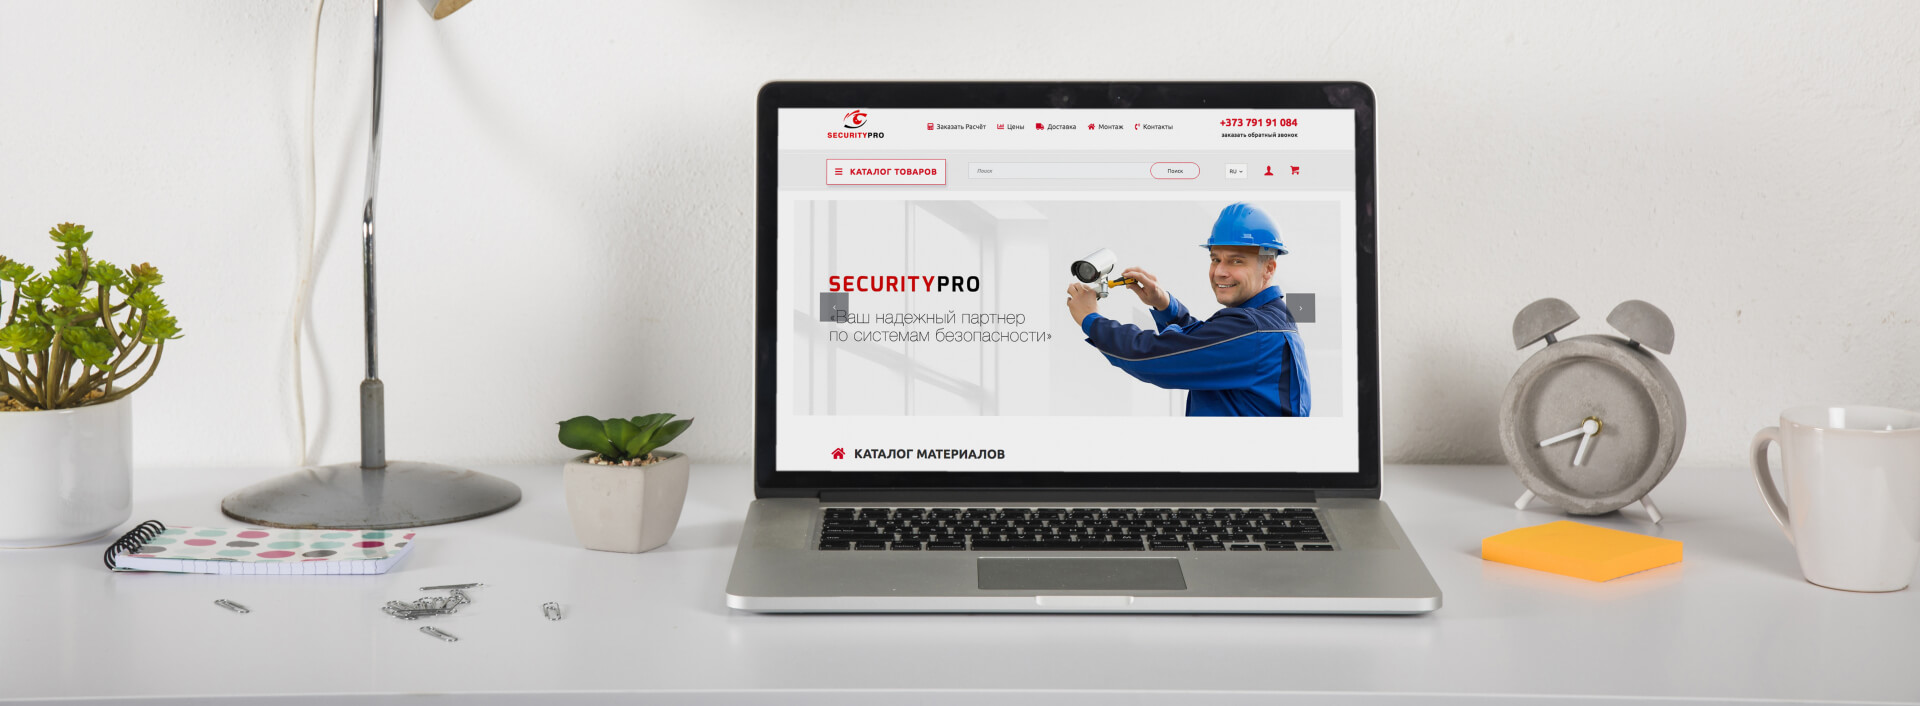 Security Pro - Online Store